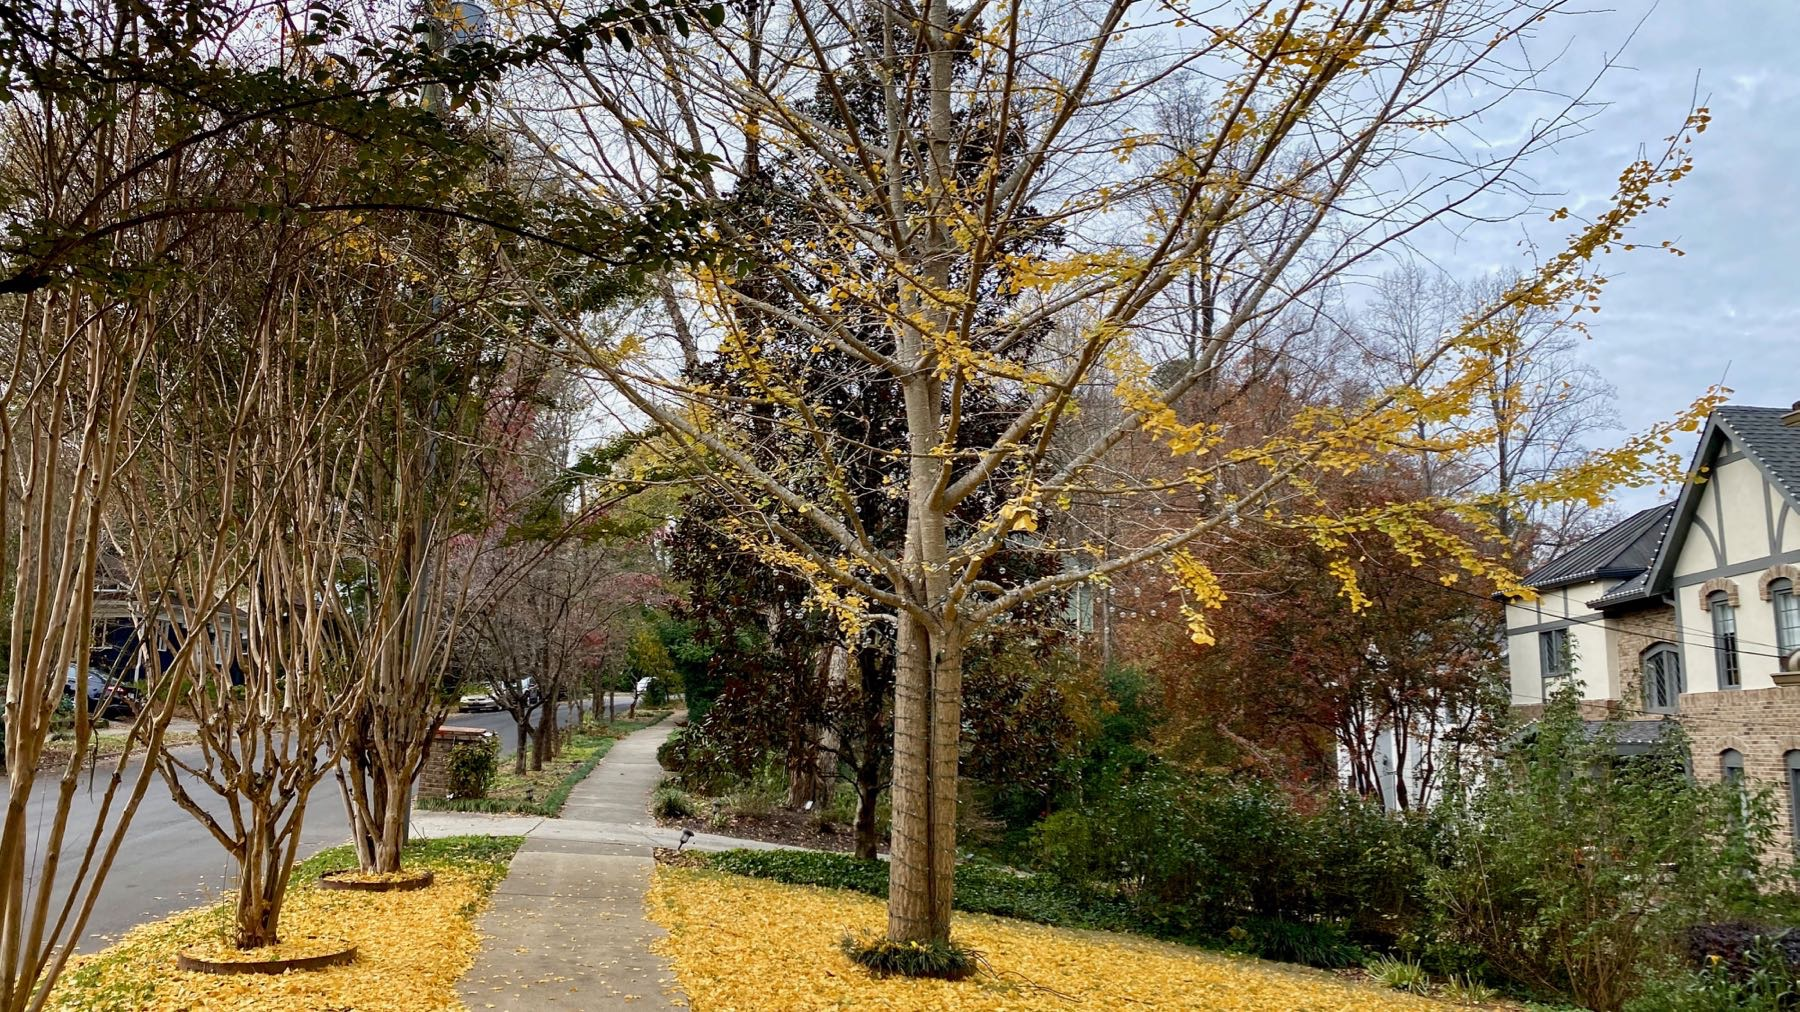 Ginkgo leaves down